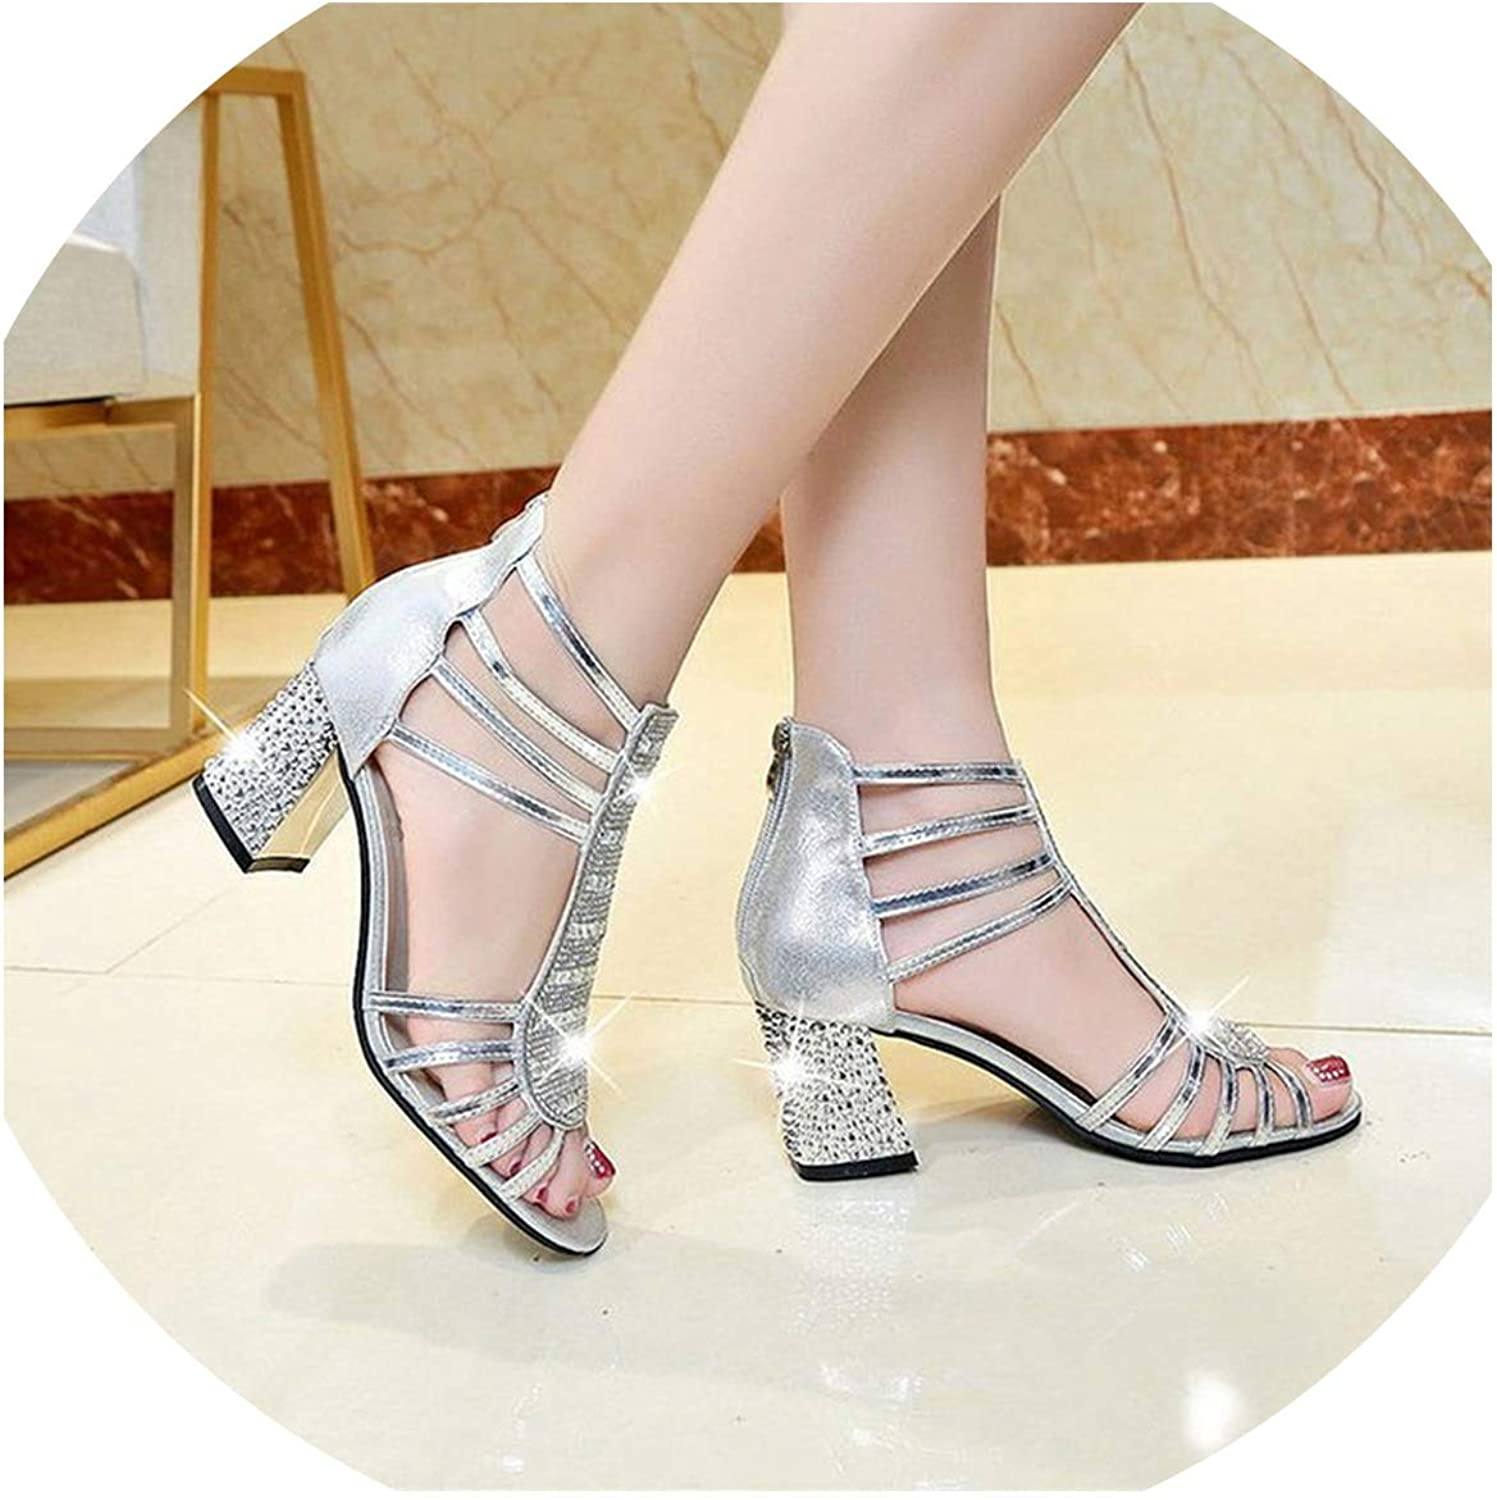 Sandals Summer Wedges Sandals Casual Roman Buckle Sandals Womens shoes Silver